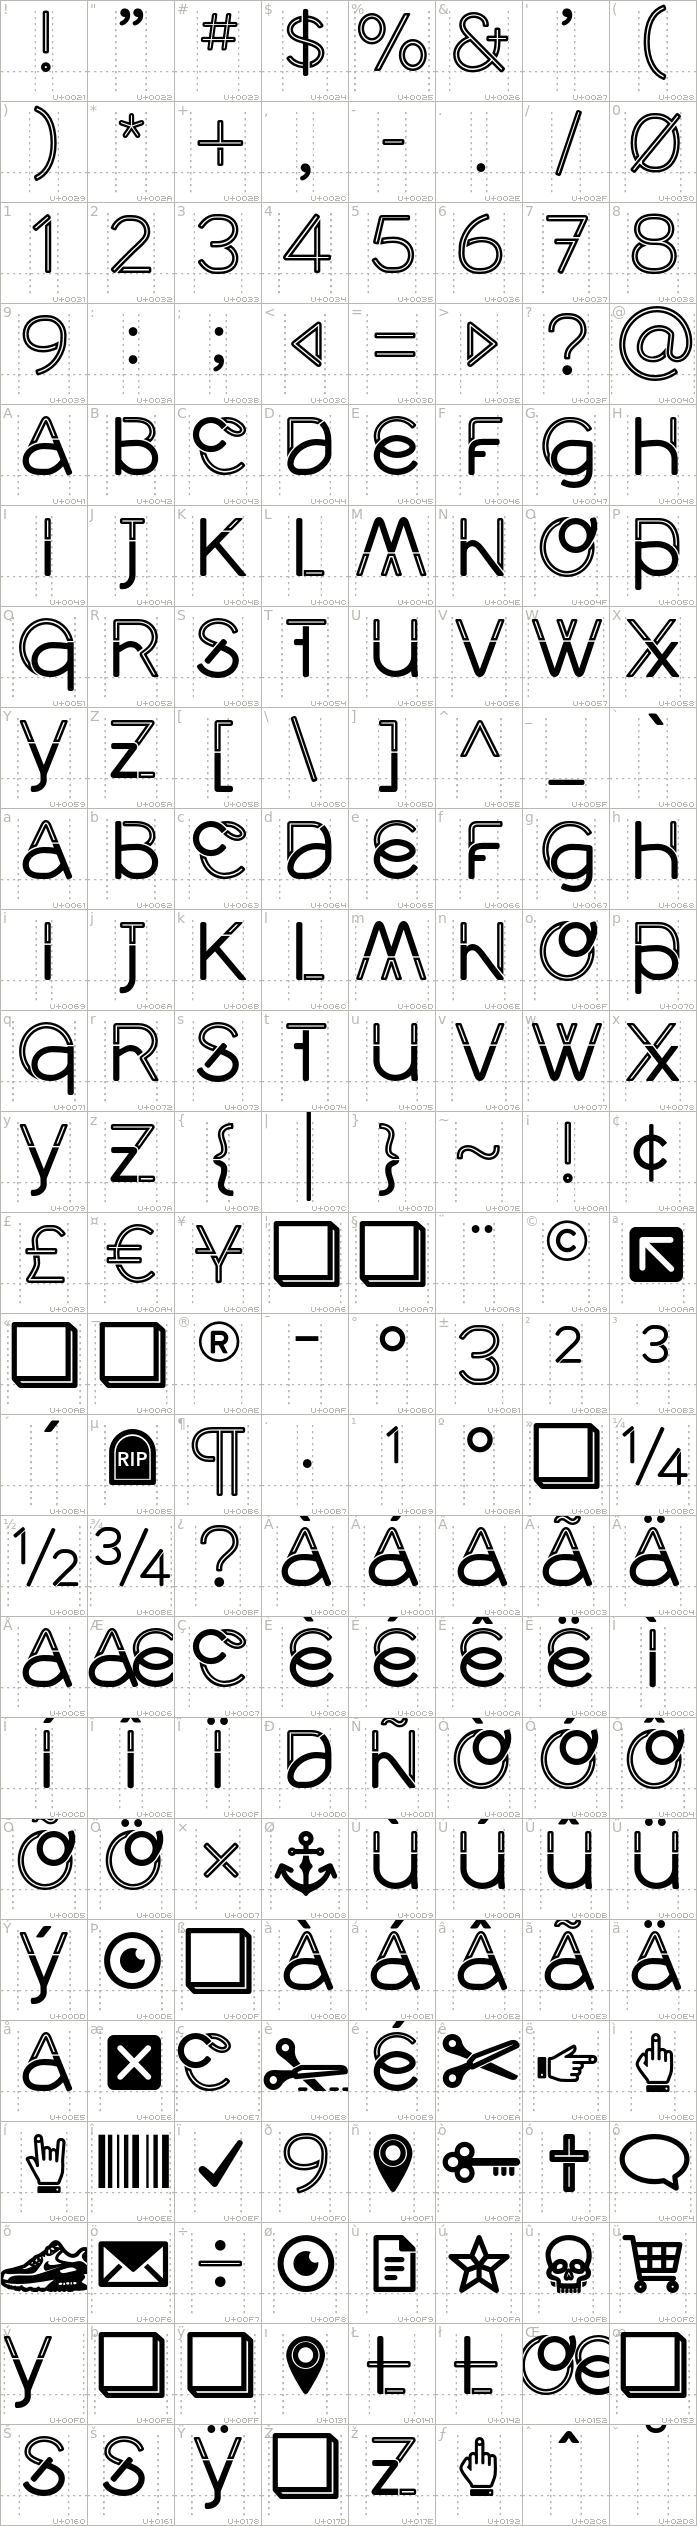 middlecase.regular-inline.character-map-1